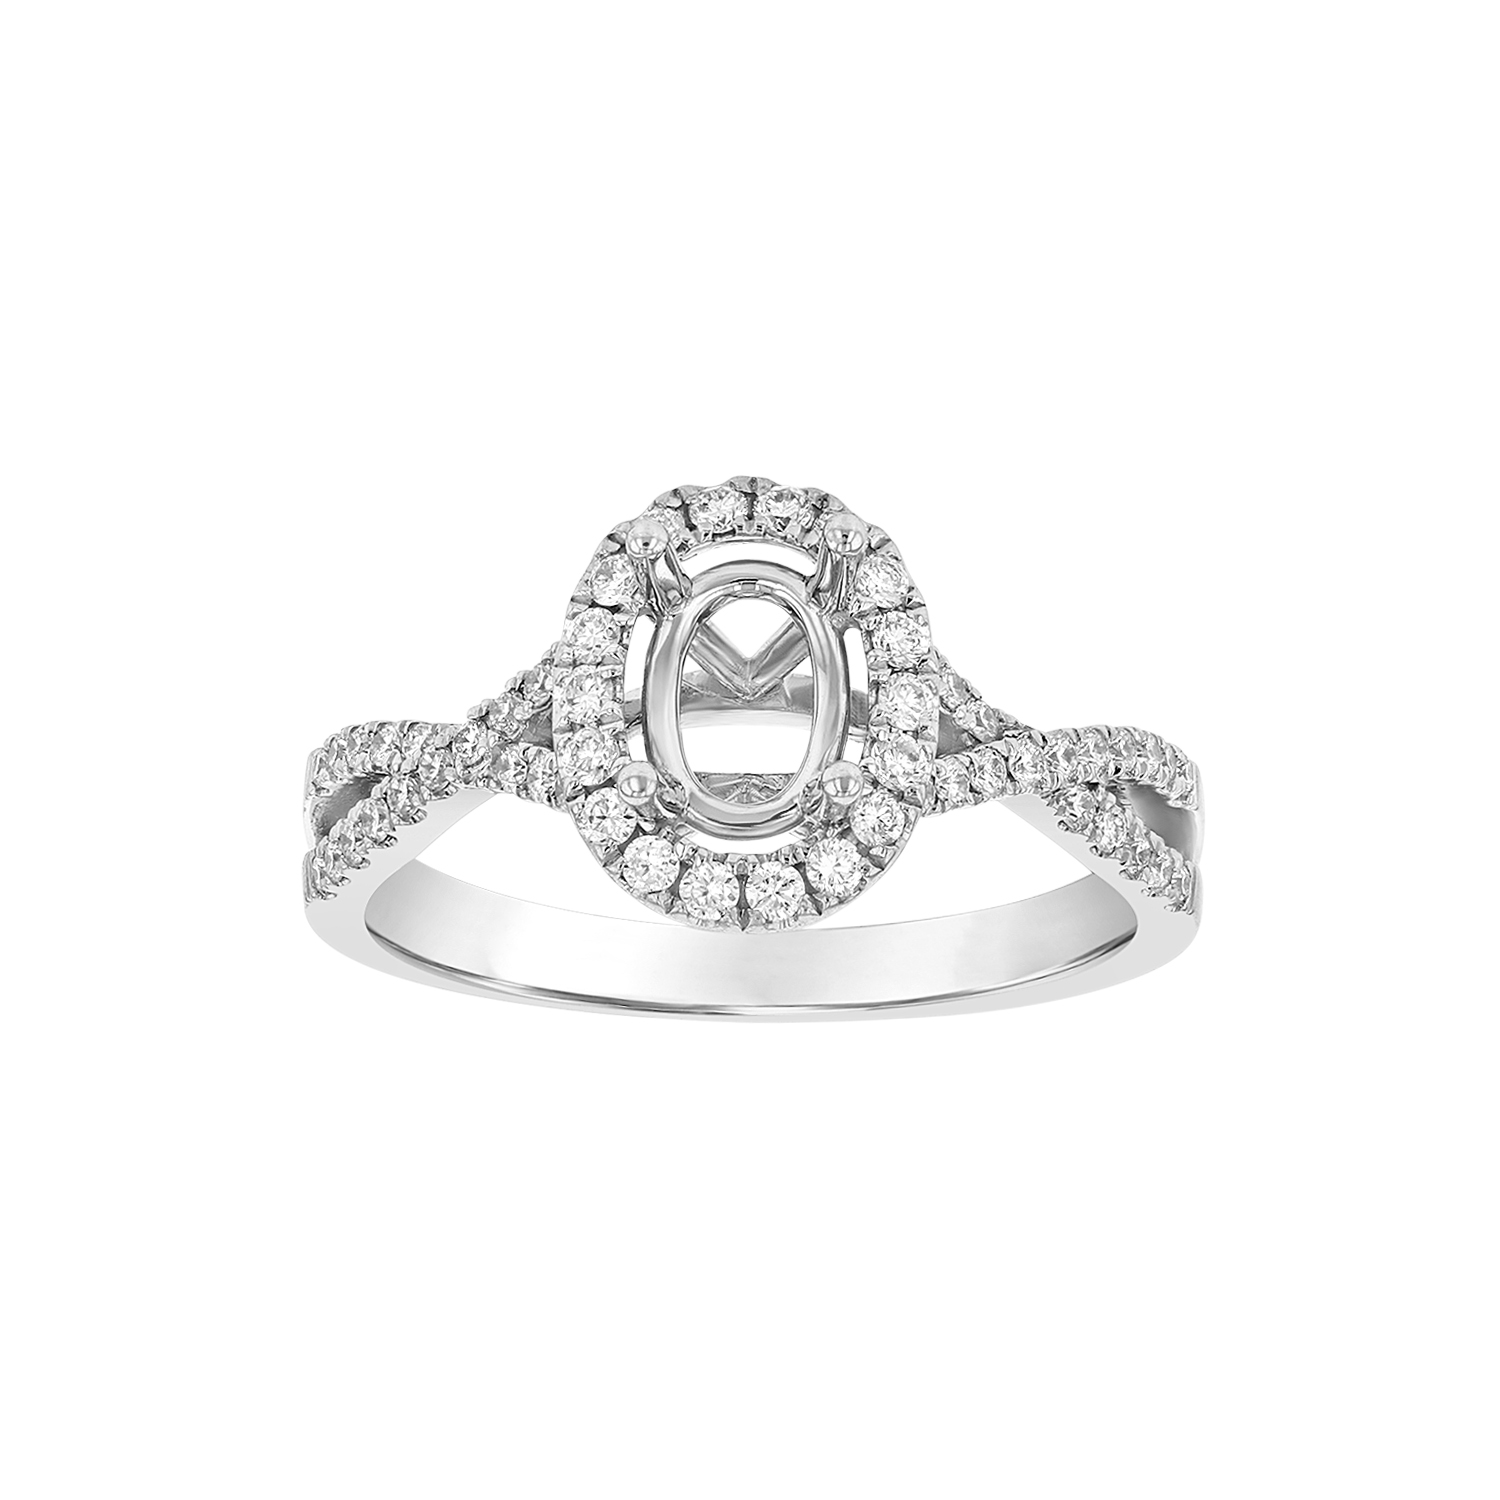 View 0.36ctw Diamond Oval Shaped Semi Mount in 18k White Gold